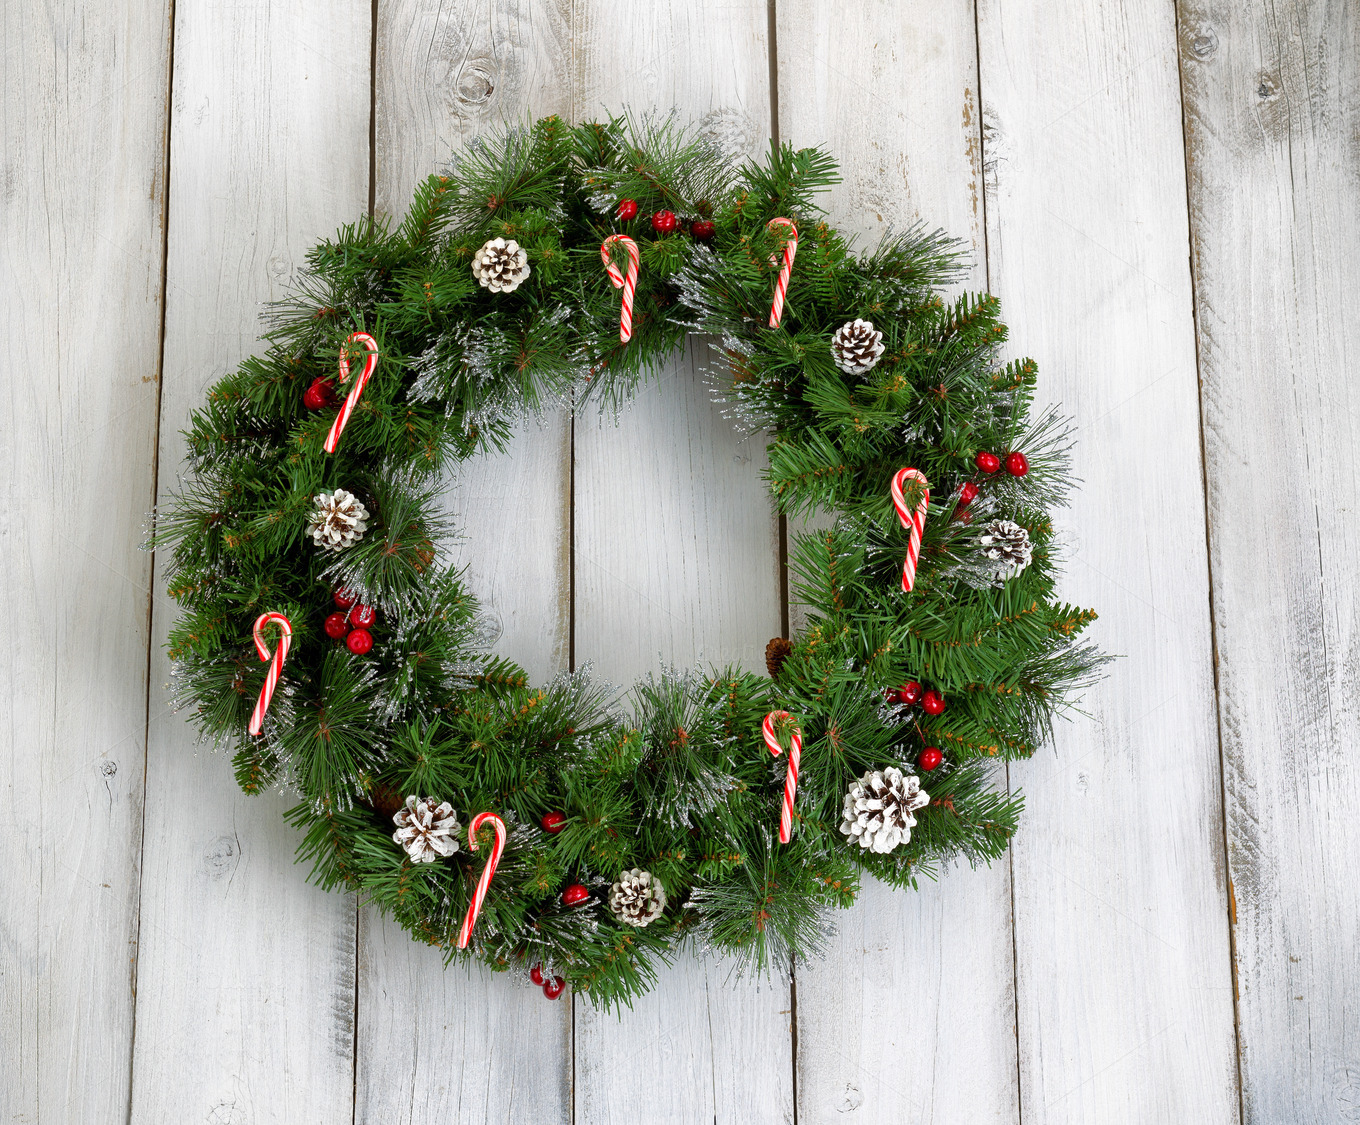 Christmas wreath on old white wood holiday photos